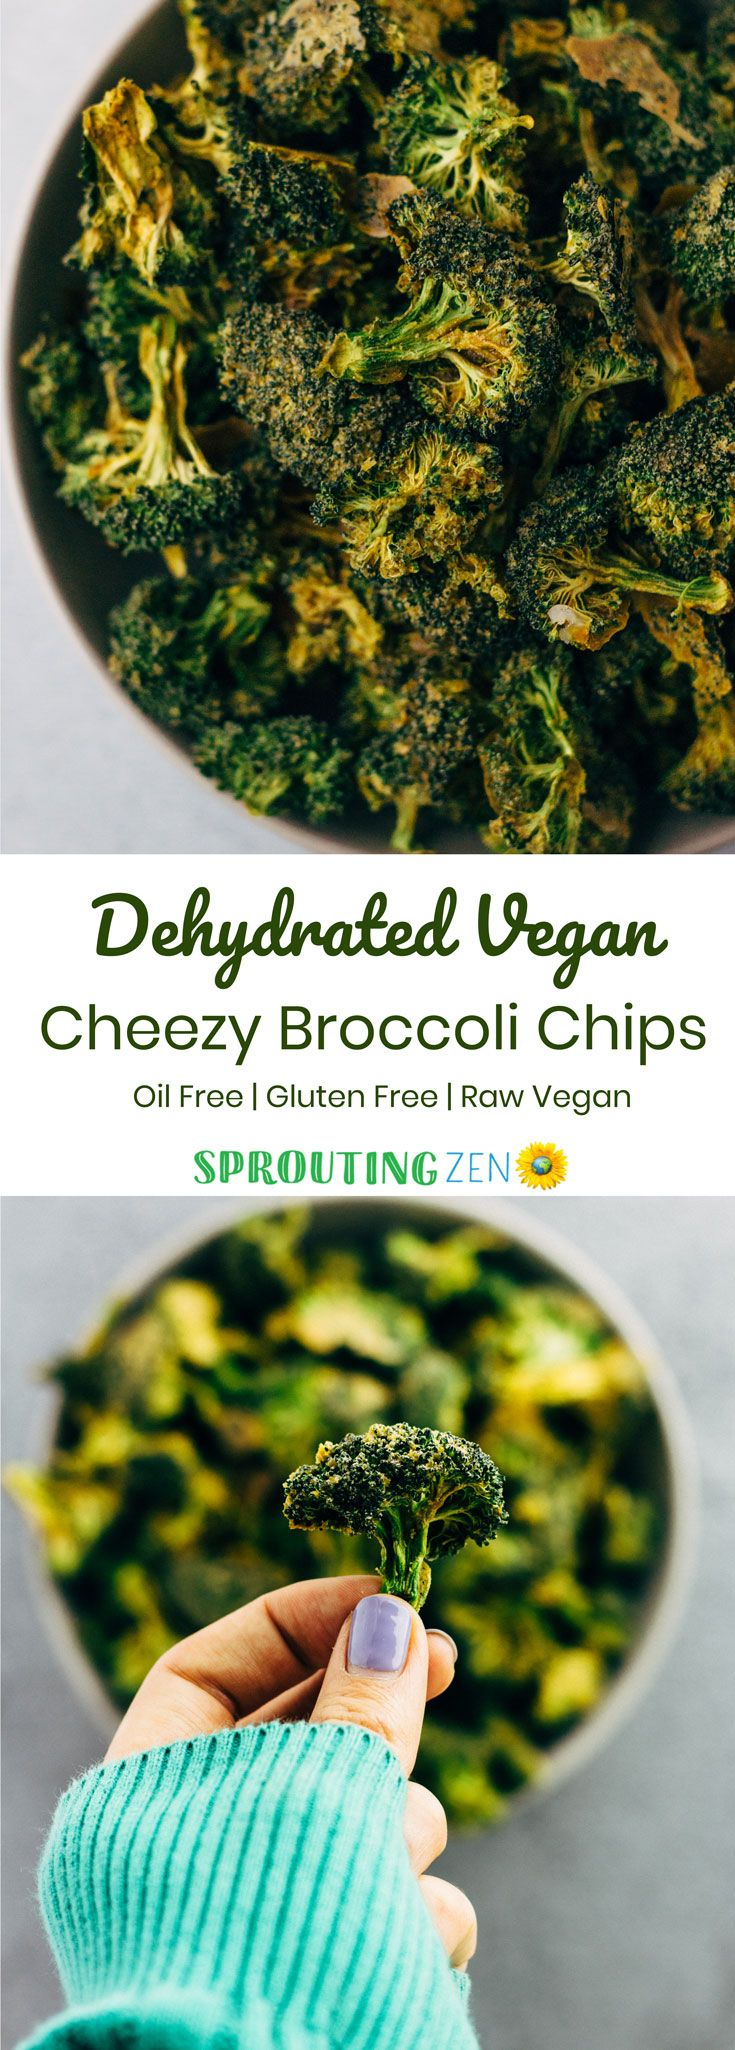 Dehydrated Raw Vegan Cheezy Broccoli Chips